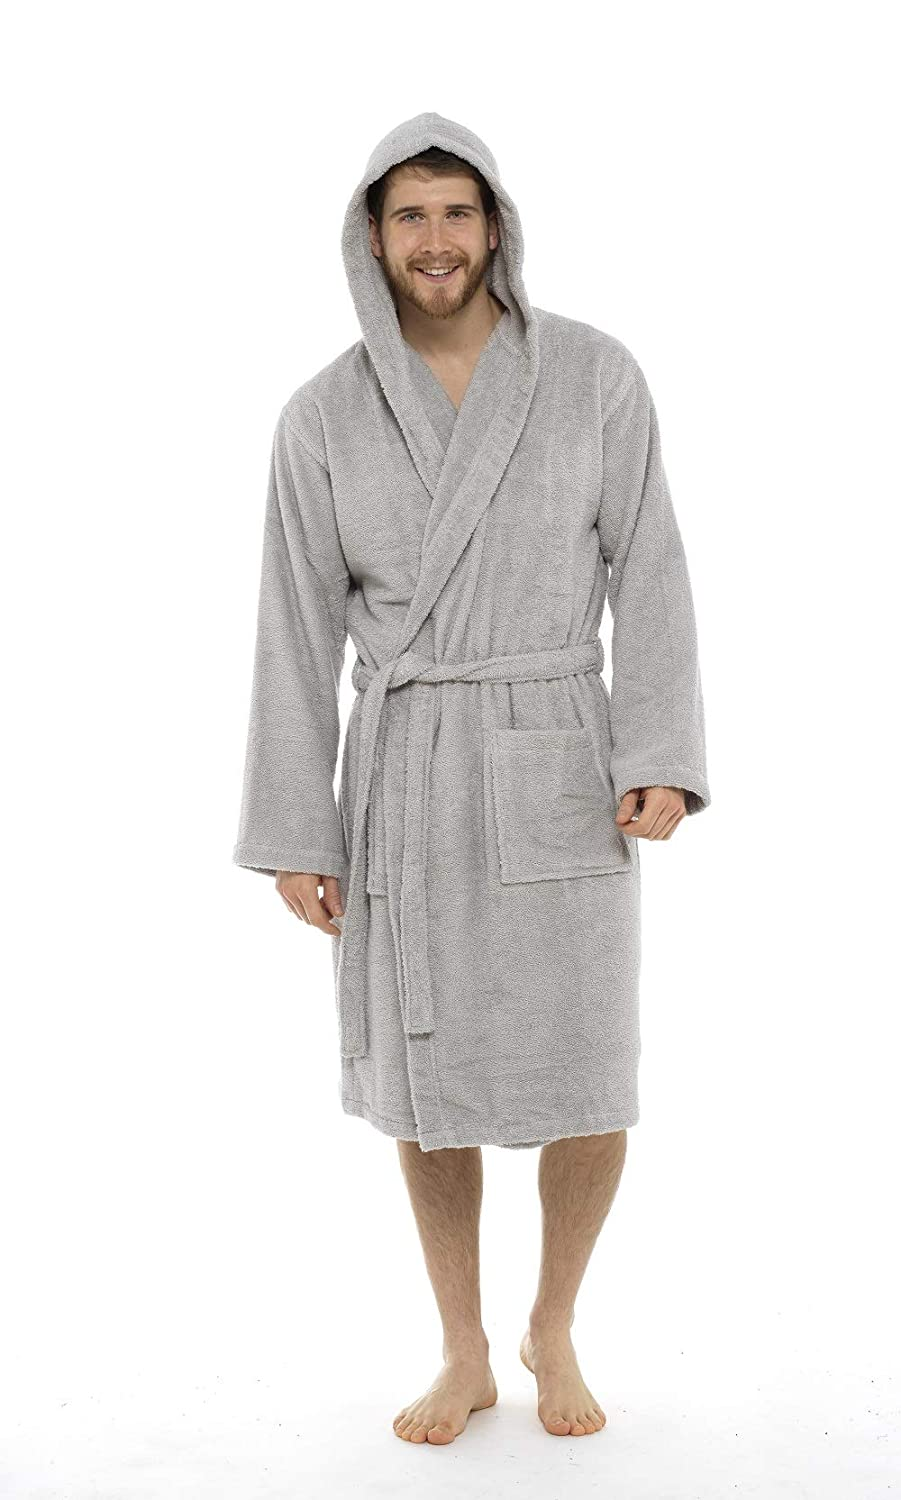 Men Towelling Robe 100% Cotton Terry Towel Shawl Collar Bathrobe Dressing  Gown Bath Robe Perfect for Gym Shower Spa Hotel Holiday  Amazon.co.uk   Clothing bf09fbf13